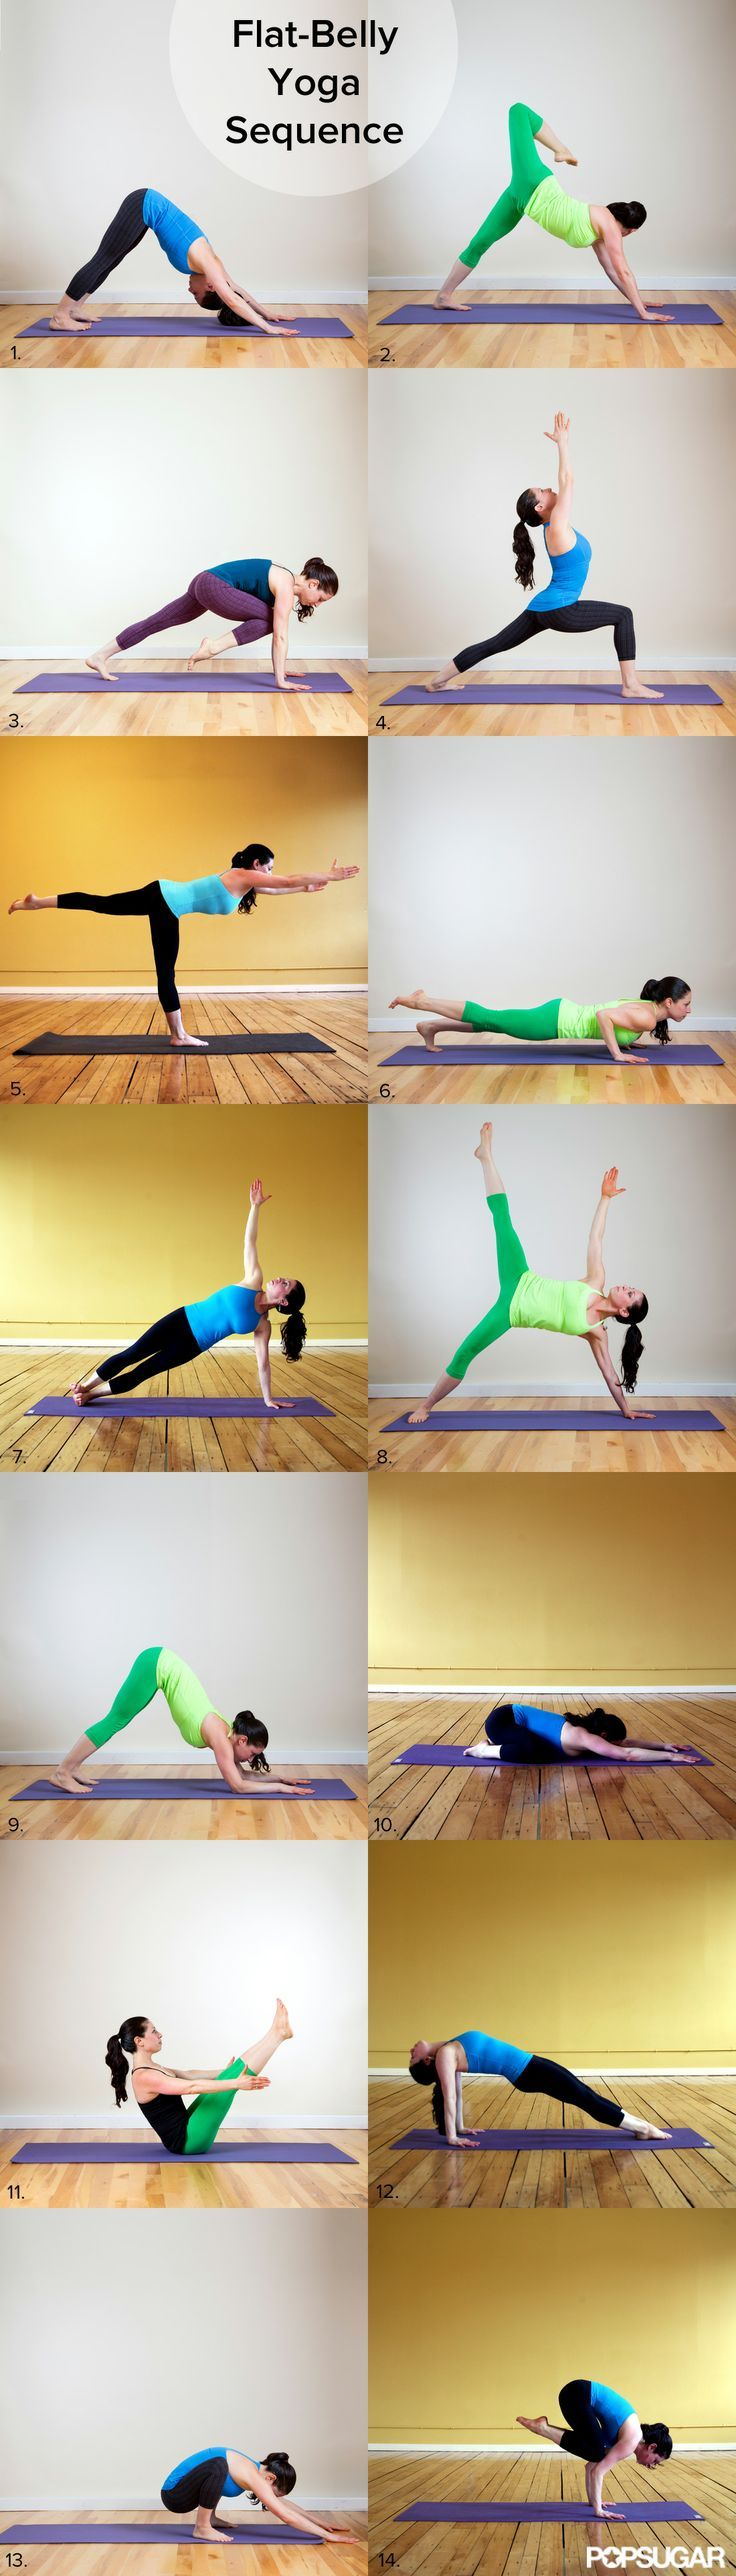 How To Lose Weight And Get Flat Belly Through Yoga Exercises 1 Diy Tag